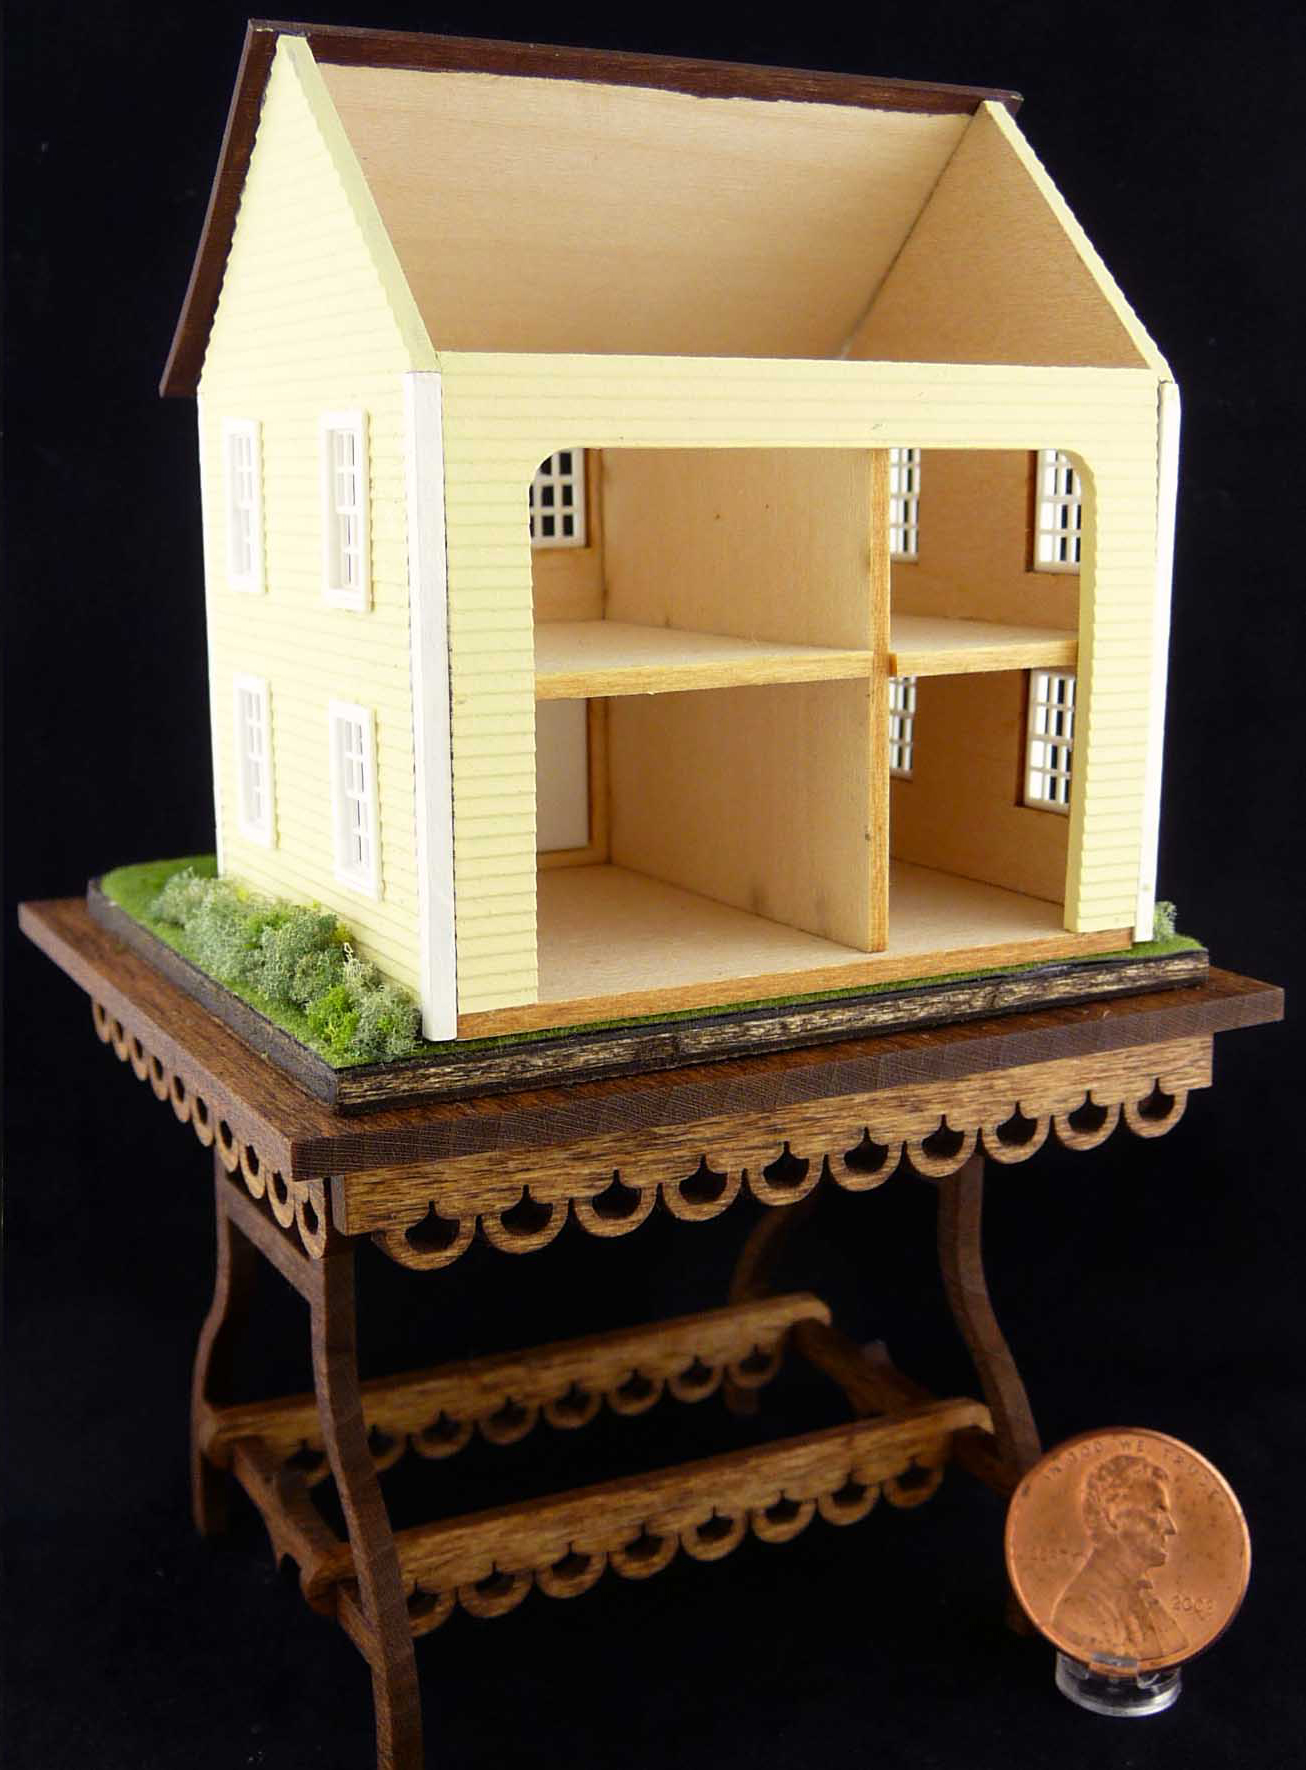 Landscaped Dollhouse for a Dollhouse On Table by Kathryn Depew - Back View